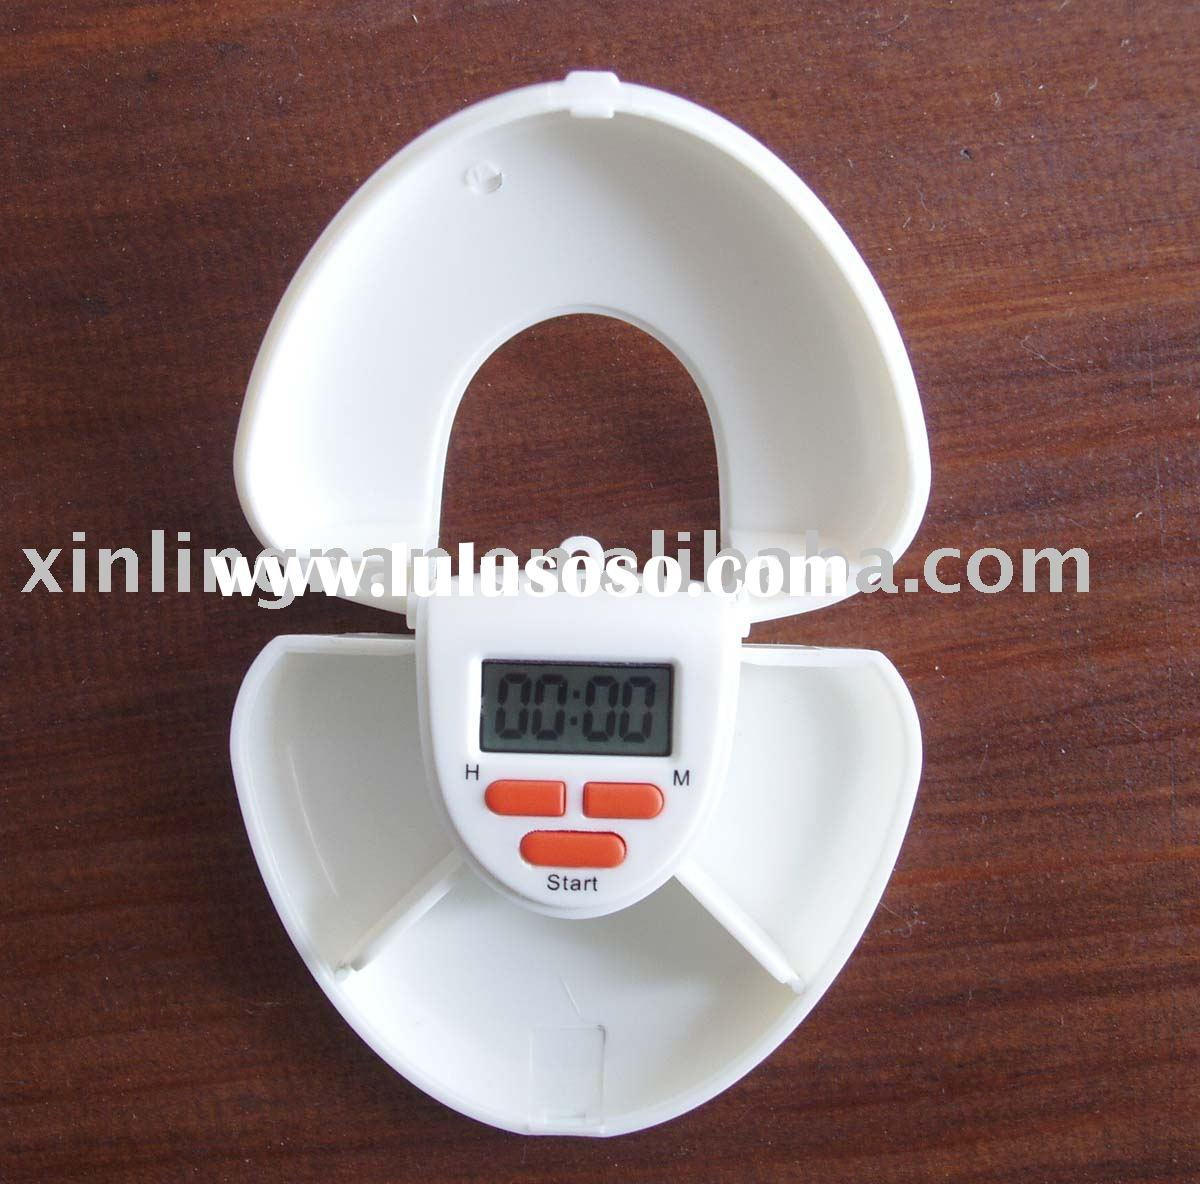 Pill box with time reminder,pillbox holder,Pill dispenser